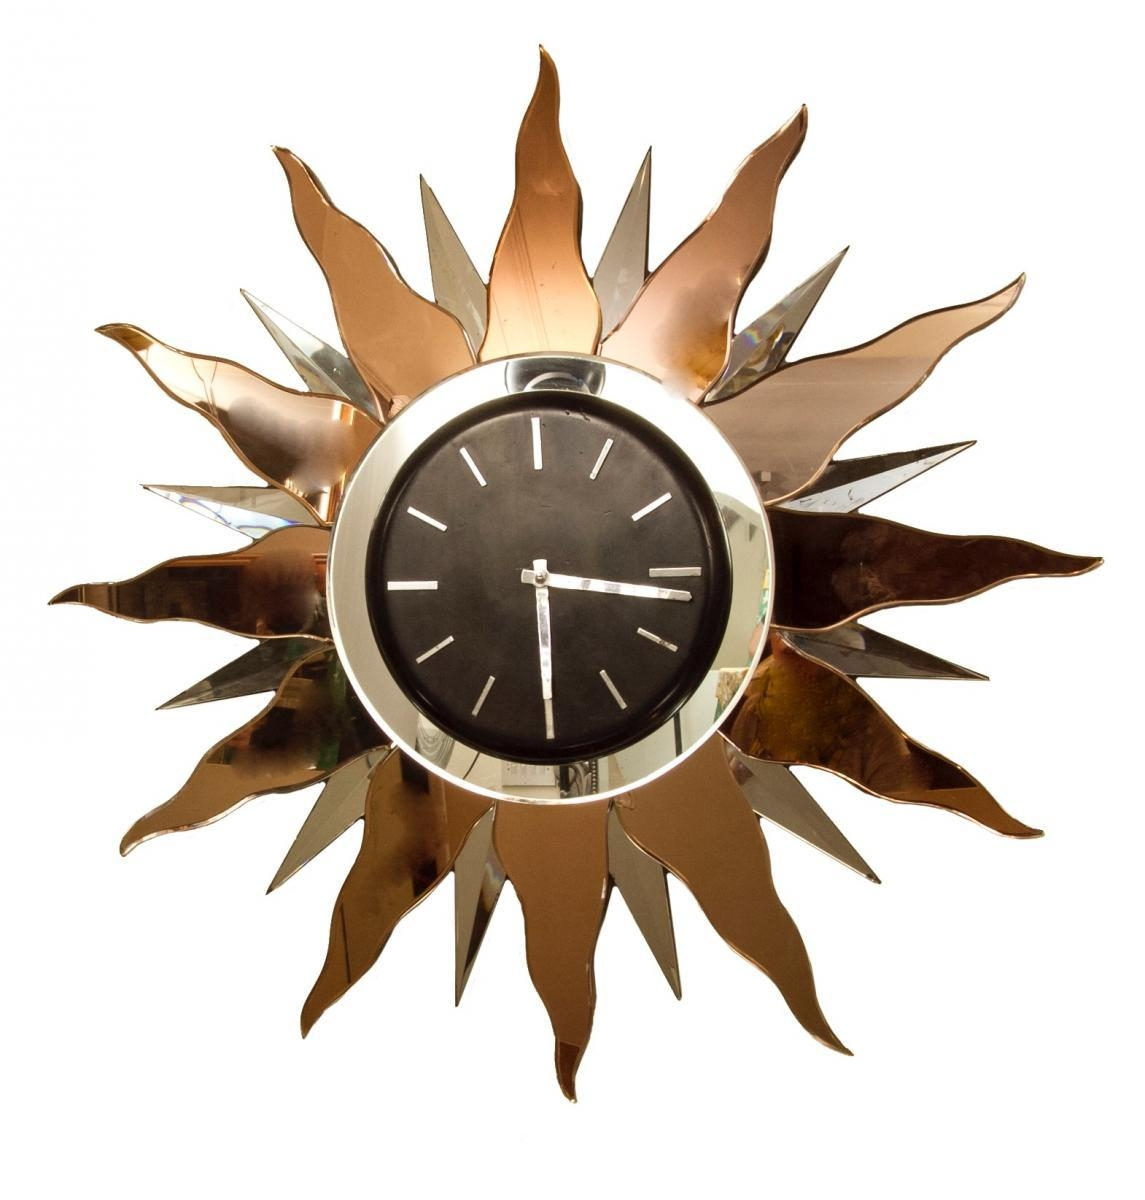 Large Art Deco Wall Clock, 1930S For Sale At Pamono With Large Art Deco Wall Clocks (Image 12 of 20)